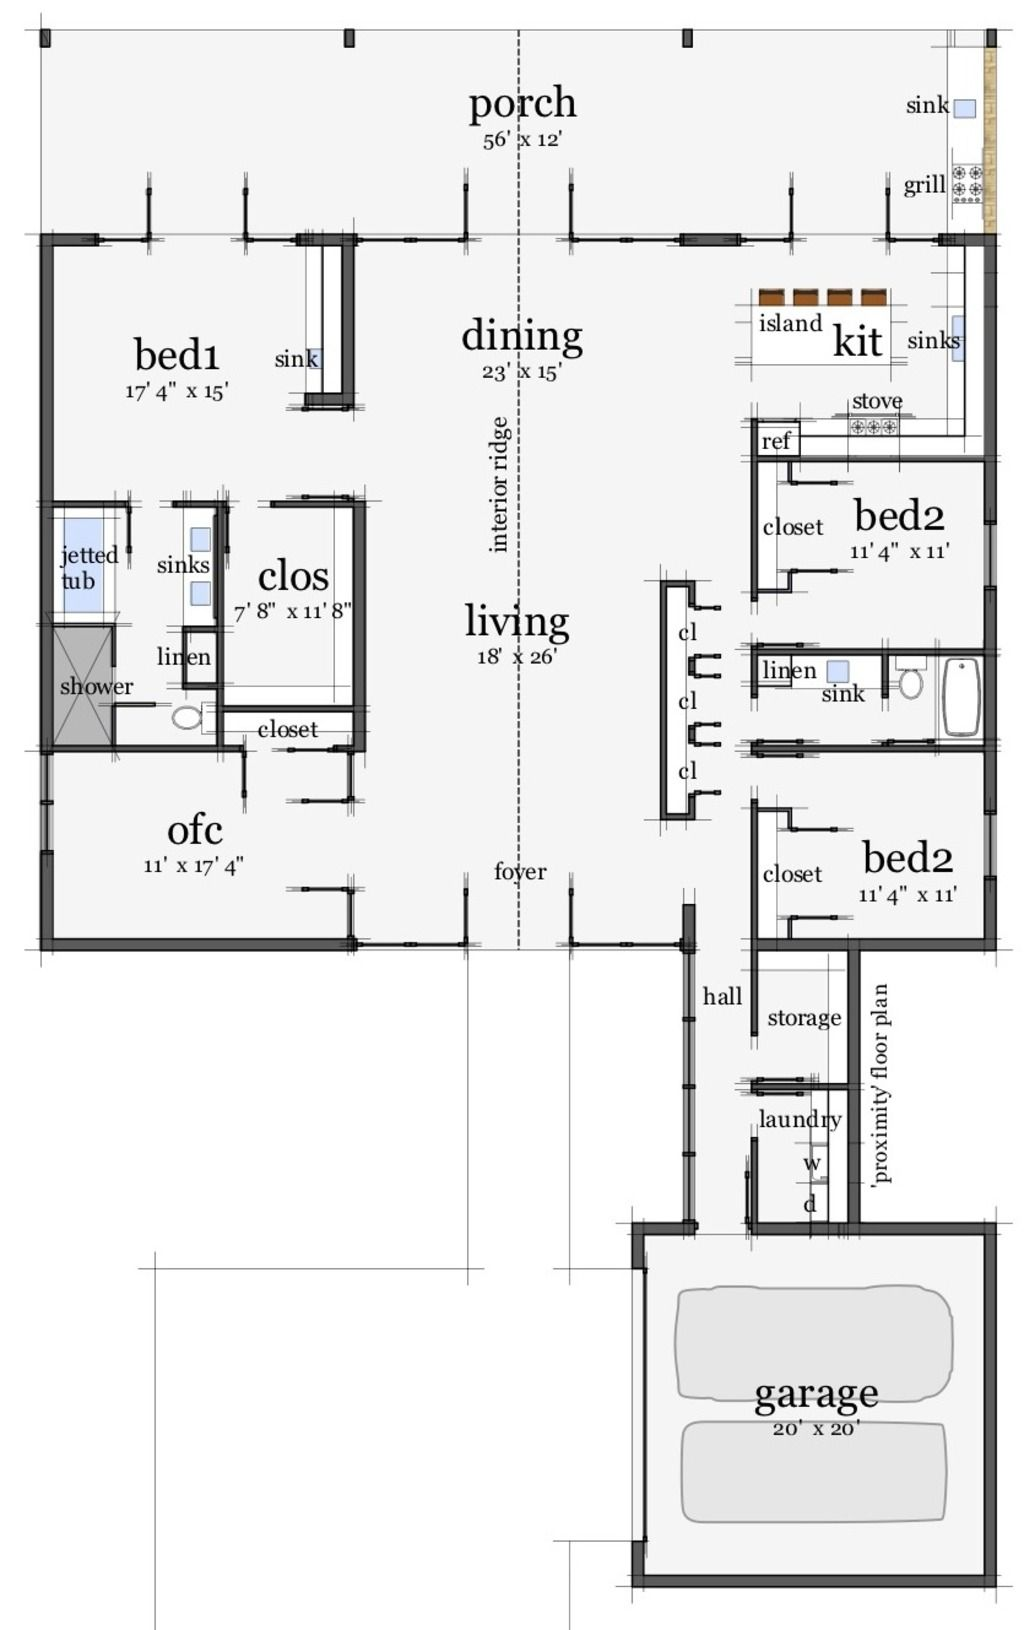 Interesting layout... think smaller scale with laundry & garage ...